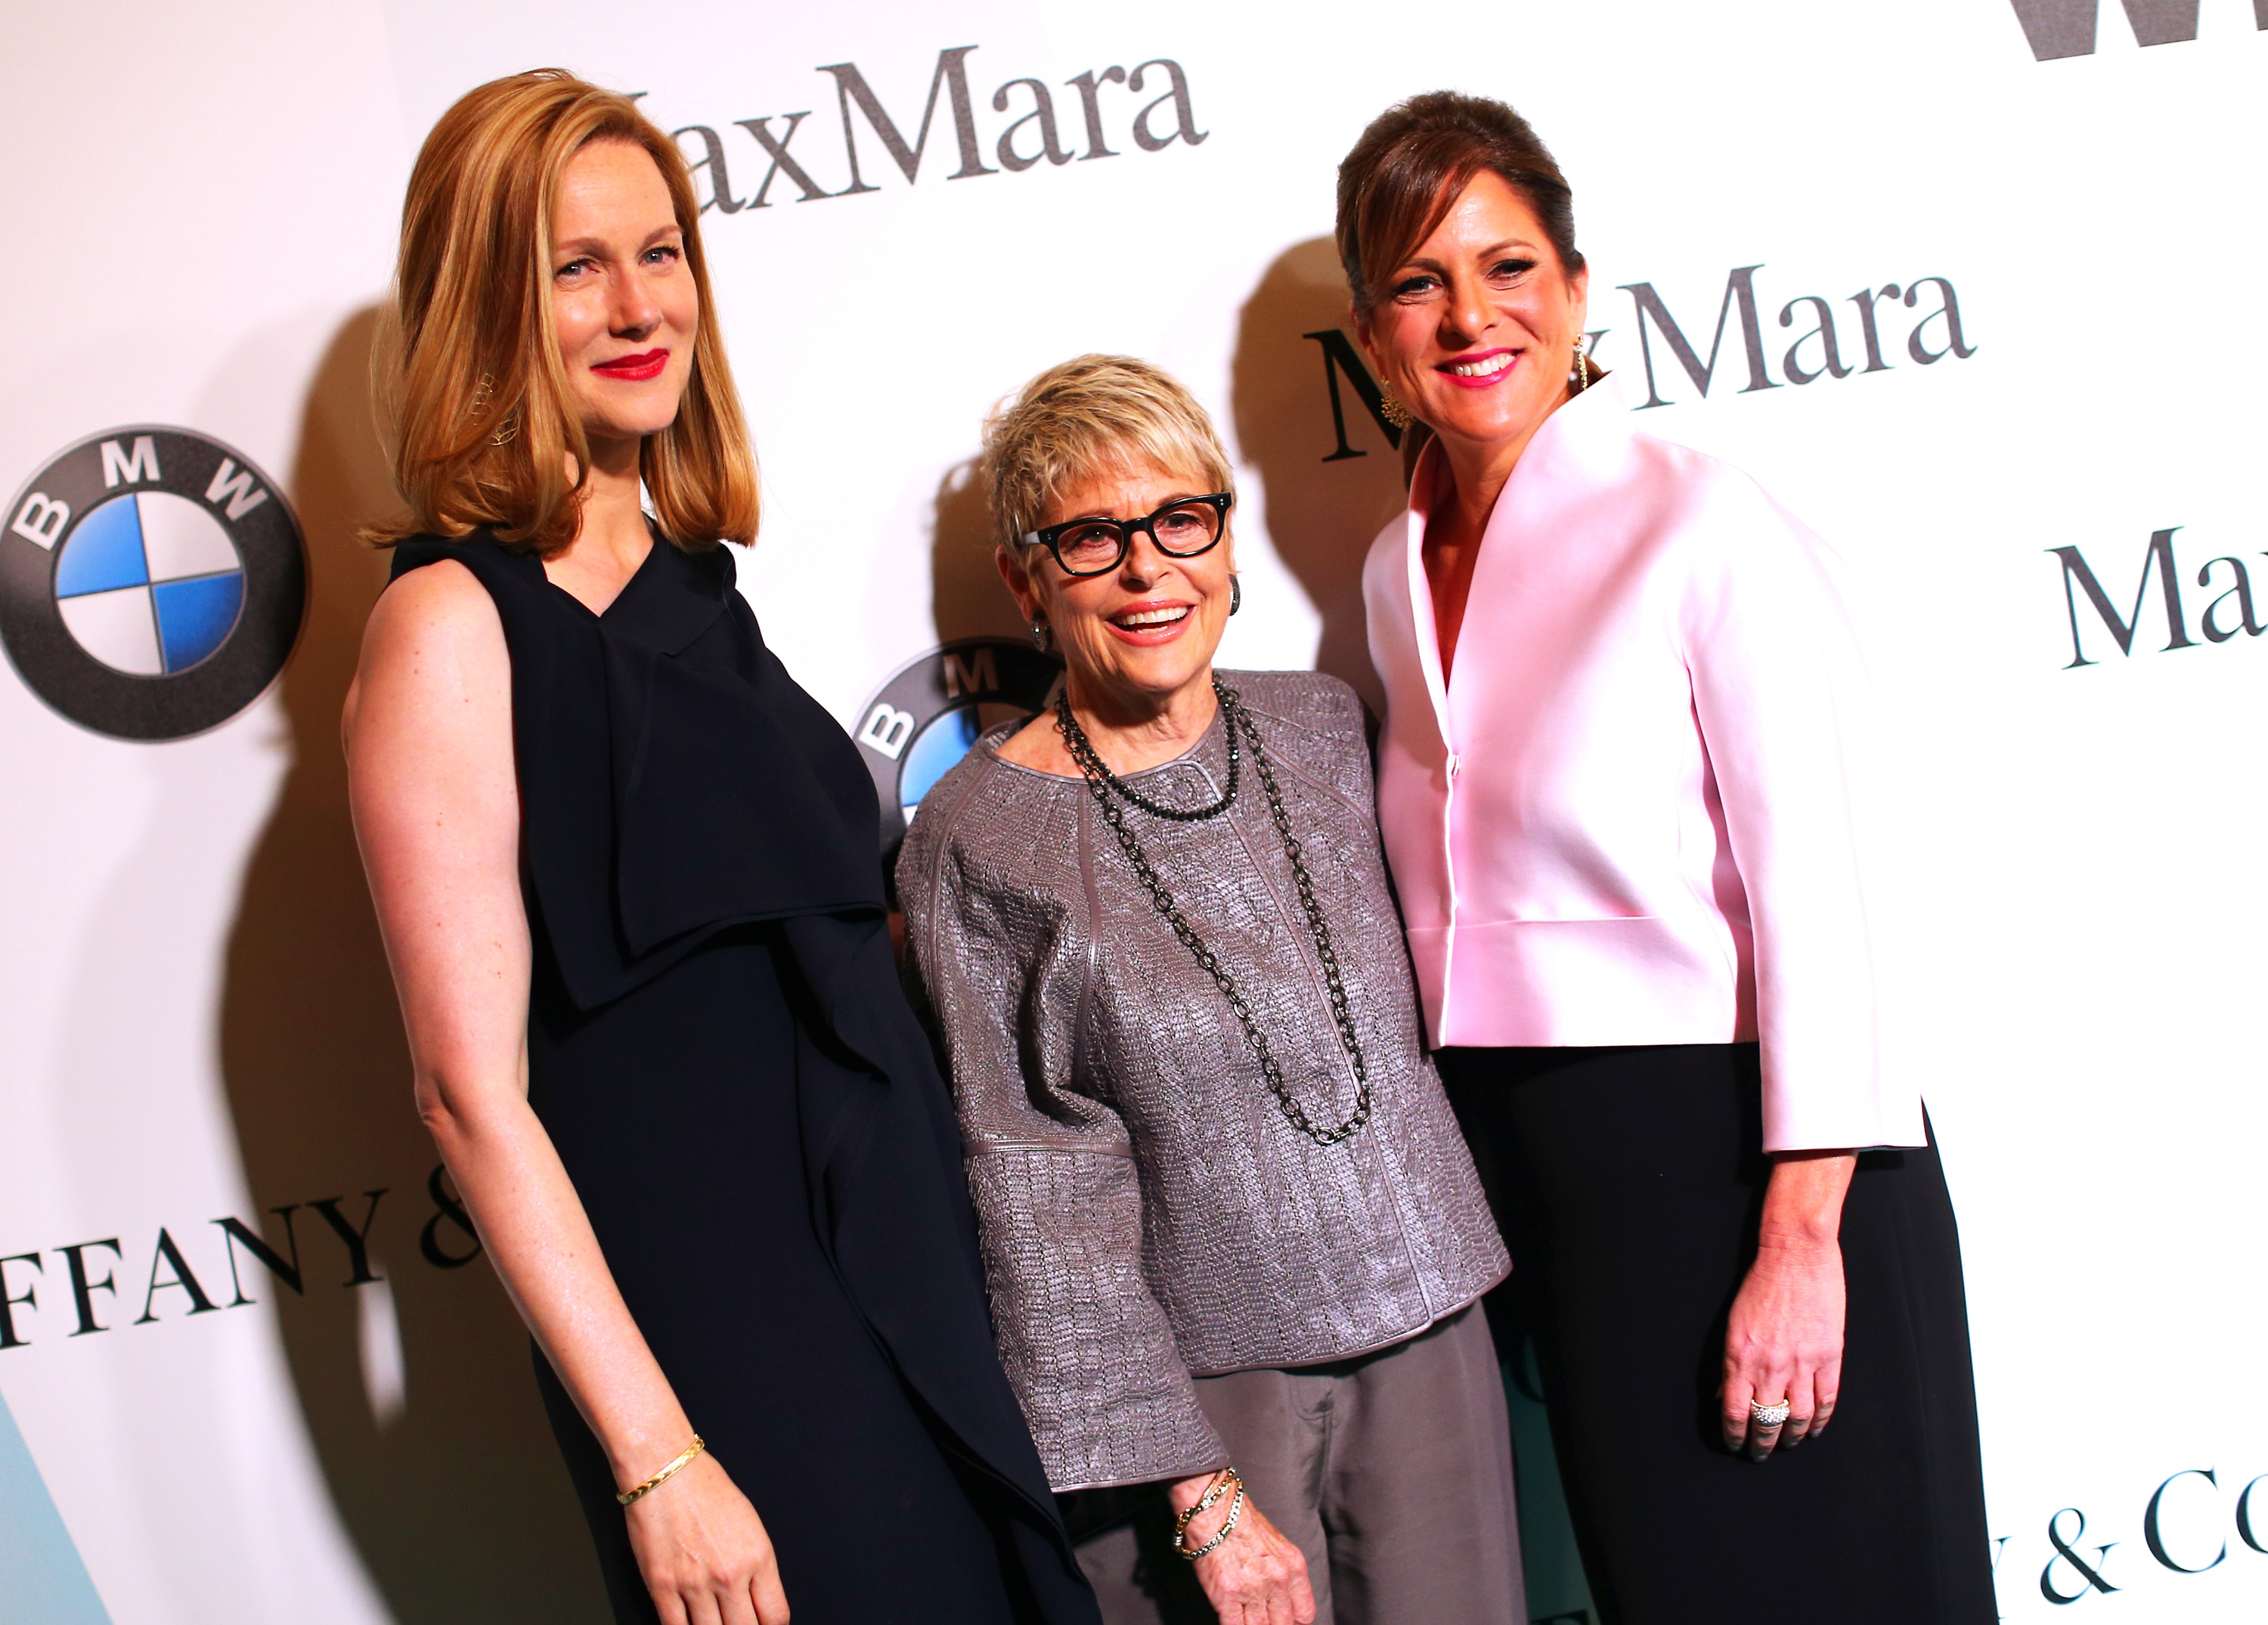 CENTURY CITY, CA - JUNE 16:  (L-R) Actress Laura Linney, honoree Toni Howard and President of Women In Film, Los Angeles, Cathy Schulman attend the Women In Film 2015 Crystal + Lucy Awards Presented by Max Mara, BMW of North America, and Tiffany & Co. at the Hyatt Regency Century Plaza on June 16, 2015 in Century City, California.  (Photo by Mark Davis/Getty Images for Women in Film)